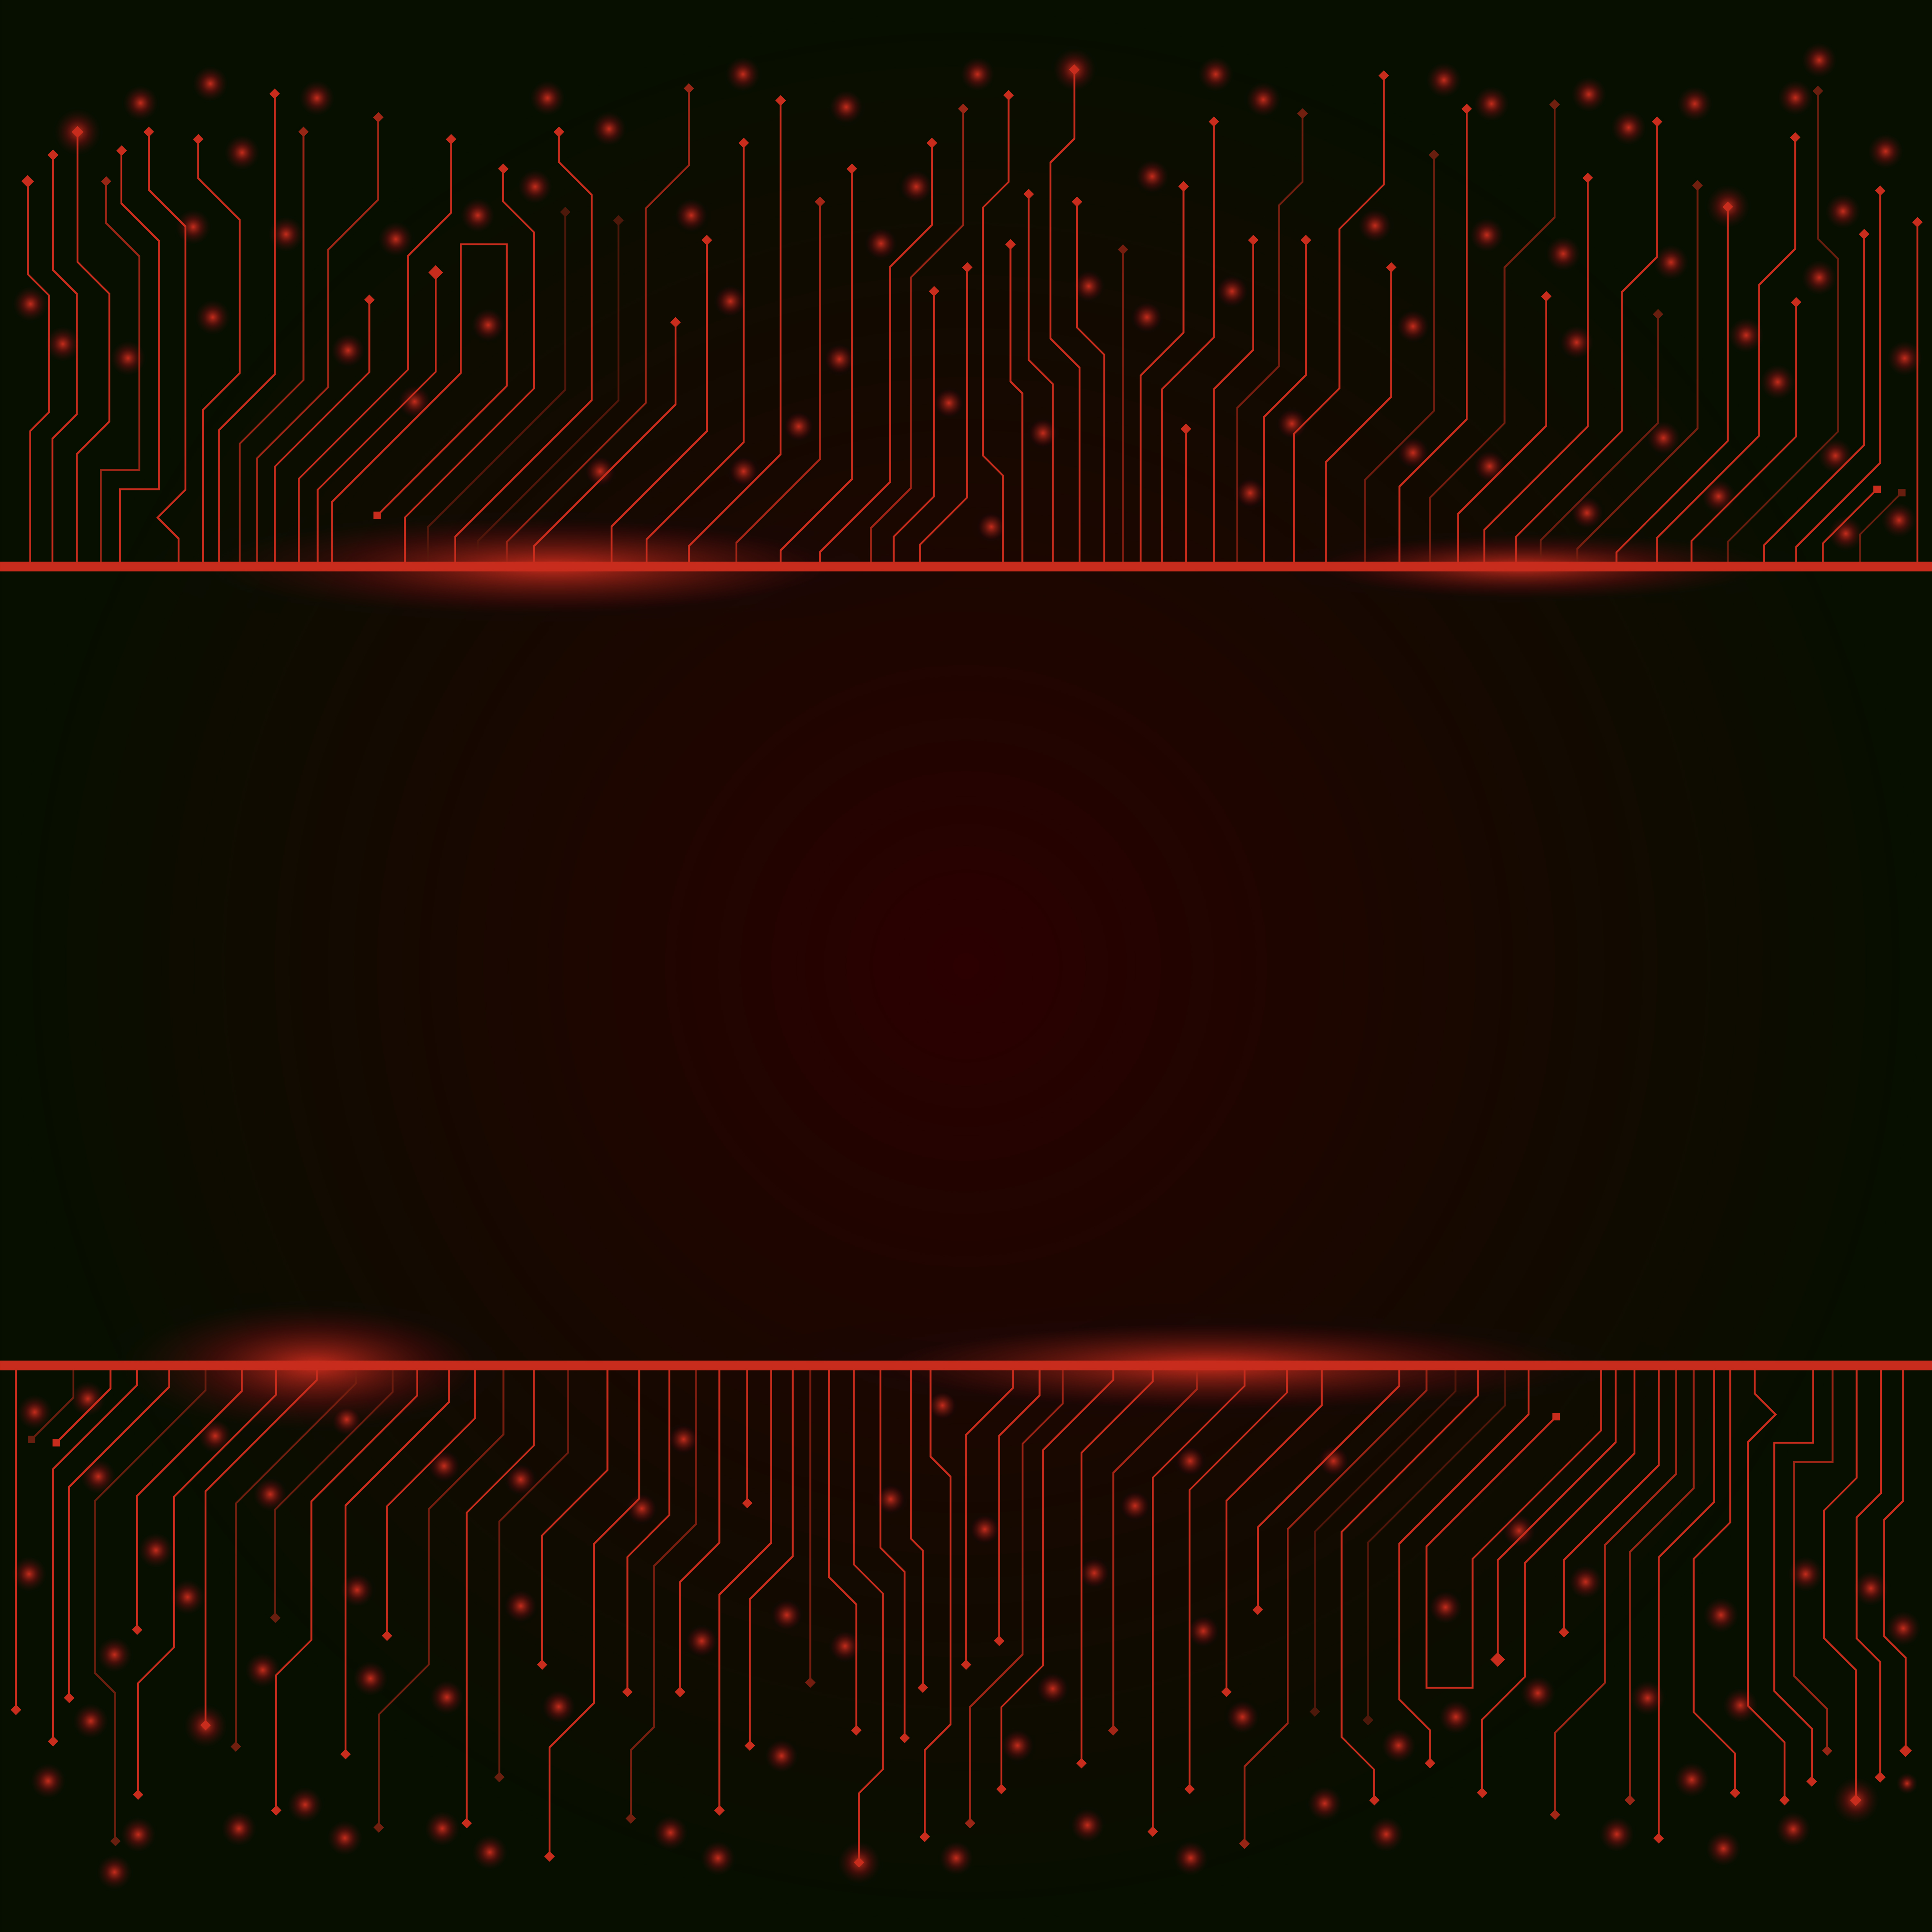 Circuit Board, Red Abstract Lights Background ,banner